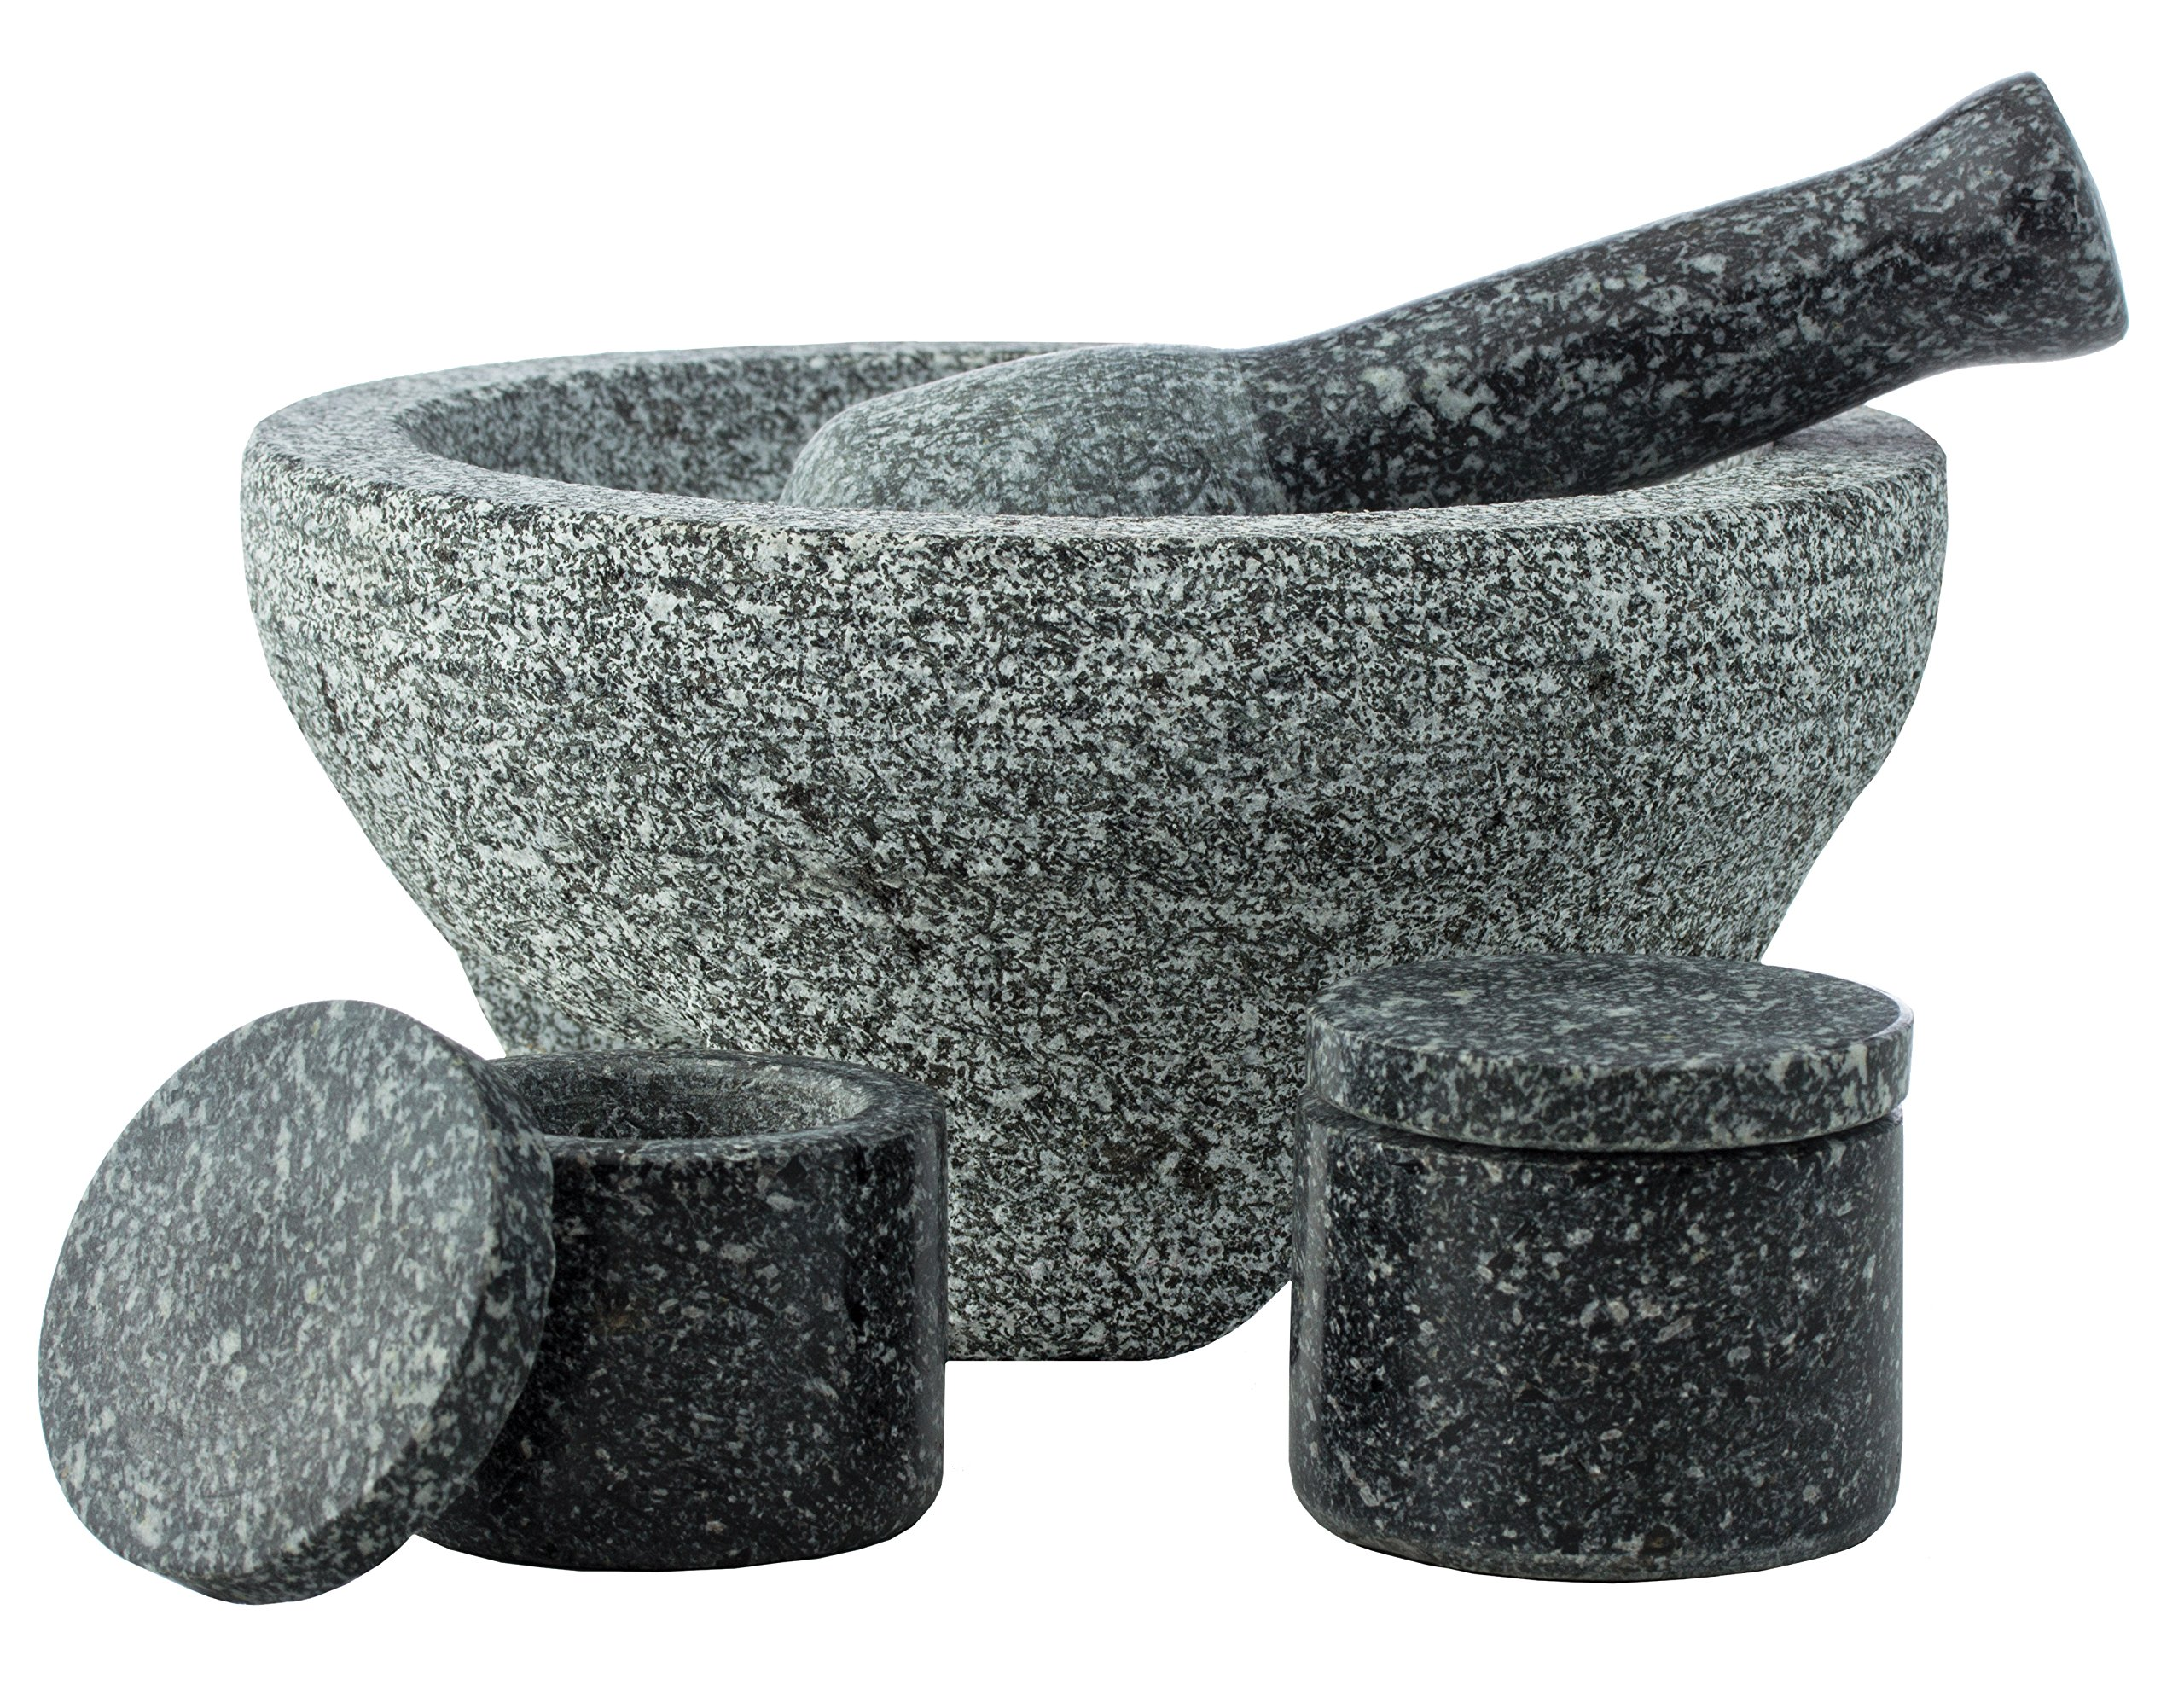 HealthSmart 4-piece Granite Molcajete Set, a Stylish Yet Durable Mortar & Pestle with 2 Spice Containers by HealthSmart